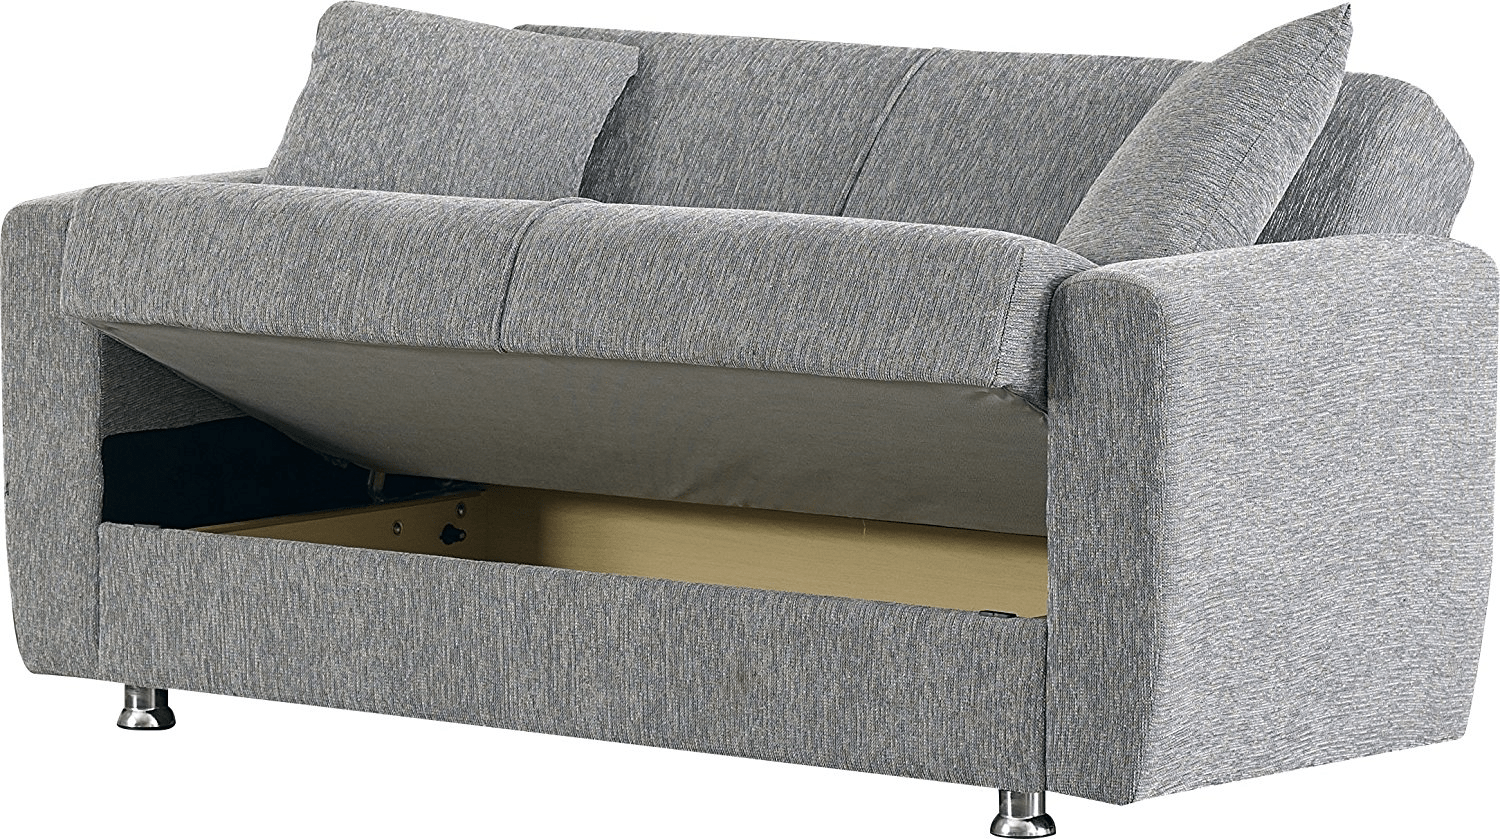 Marvelous Sleeper Sofa Love Seat With Storage   Best RV Furniture   Sofas Or Couches  For Motorhomes